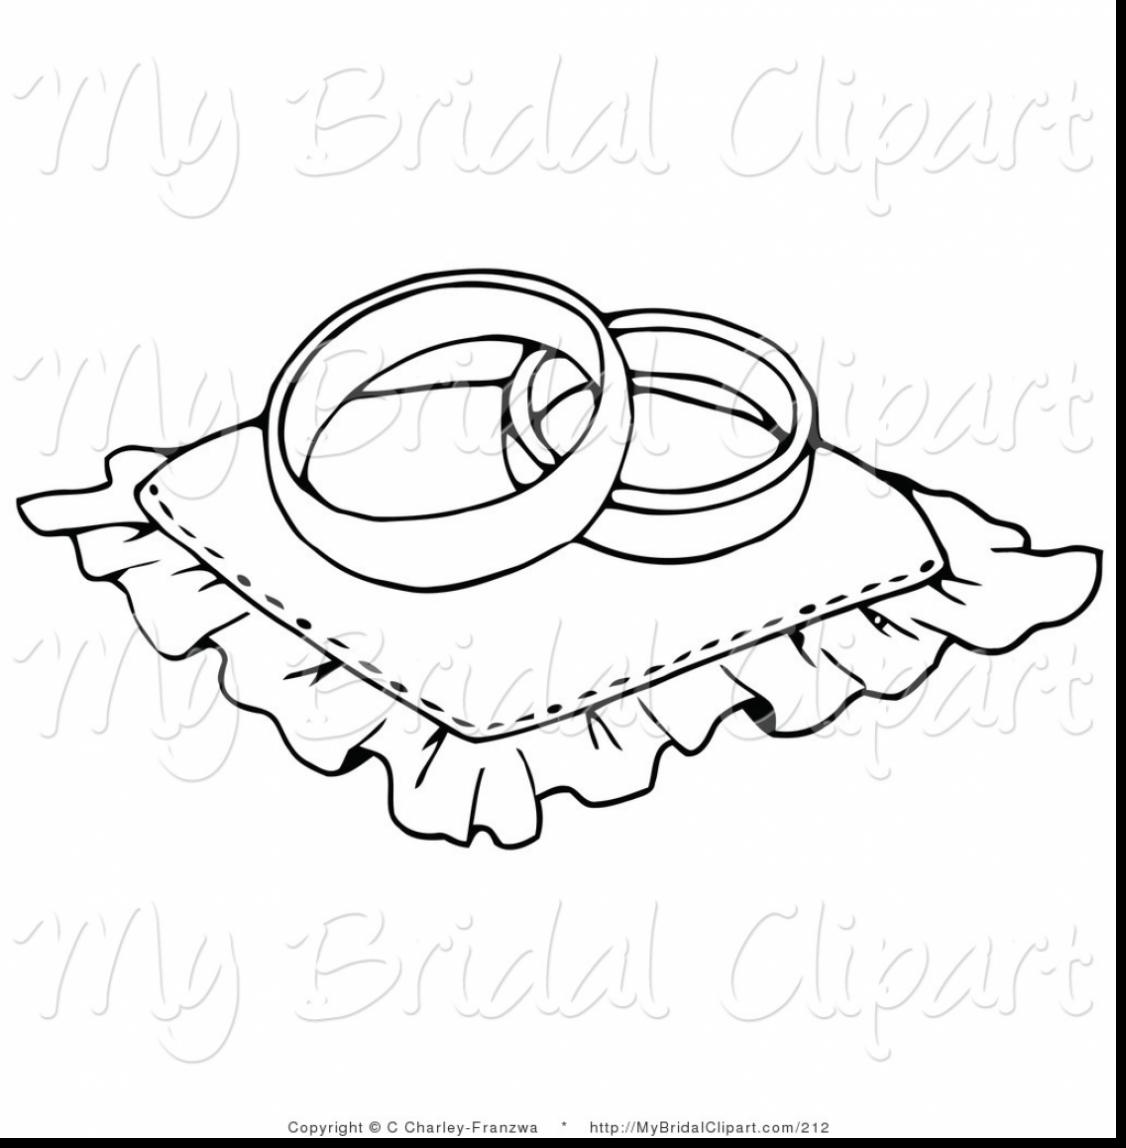 Wedding Bell Drawing at GetDrawings.com | Free for personal use ...